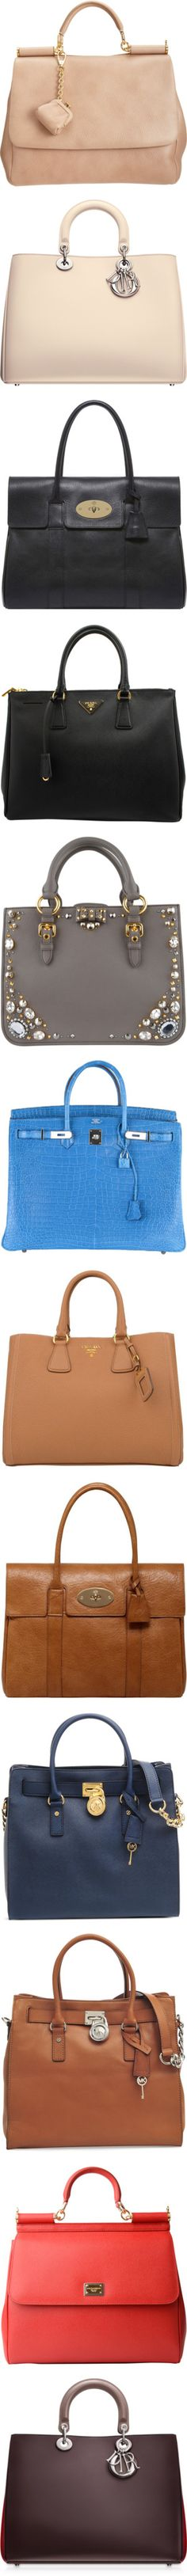 designer bags by melodynov3rd liked on polyvore